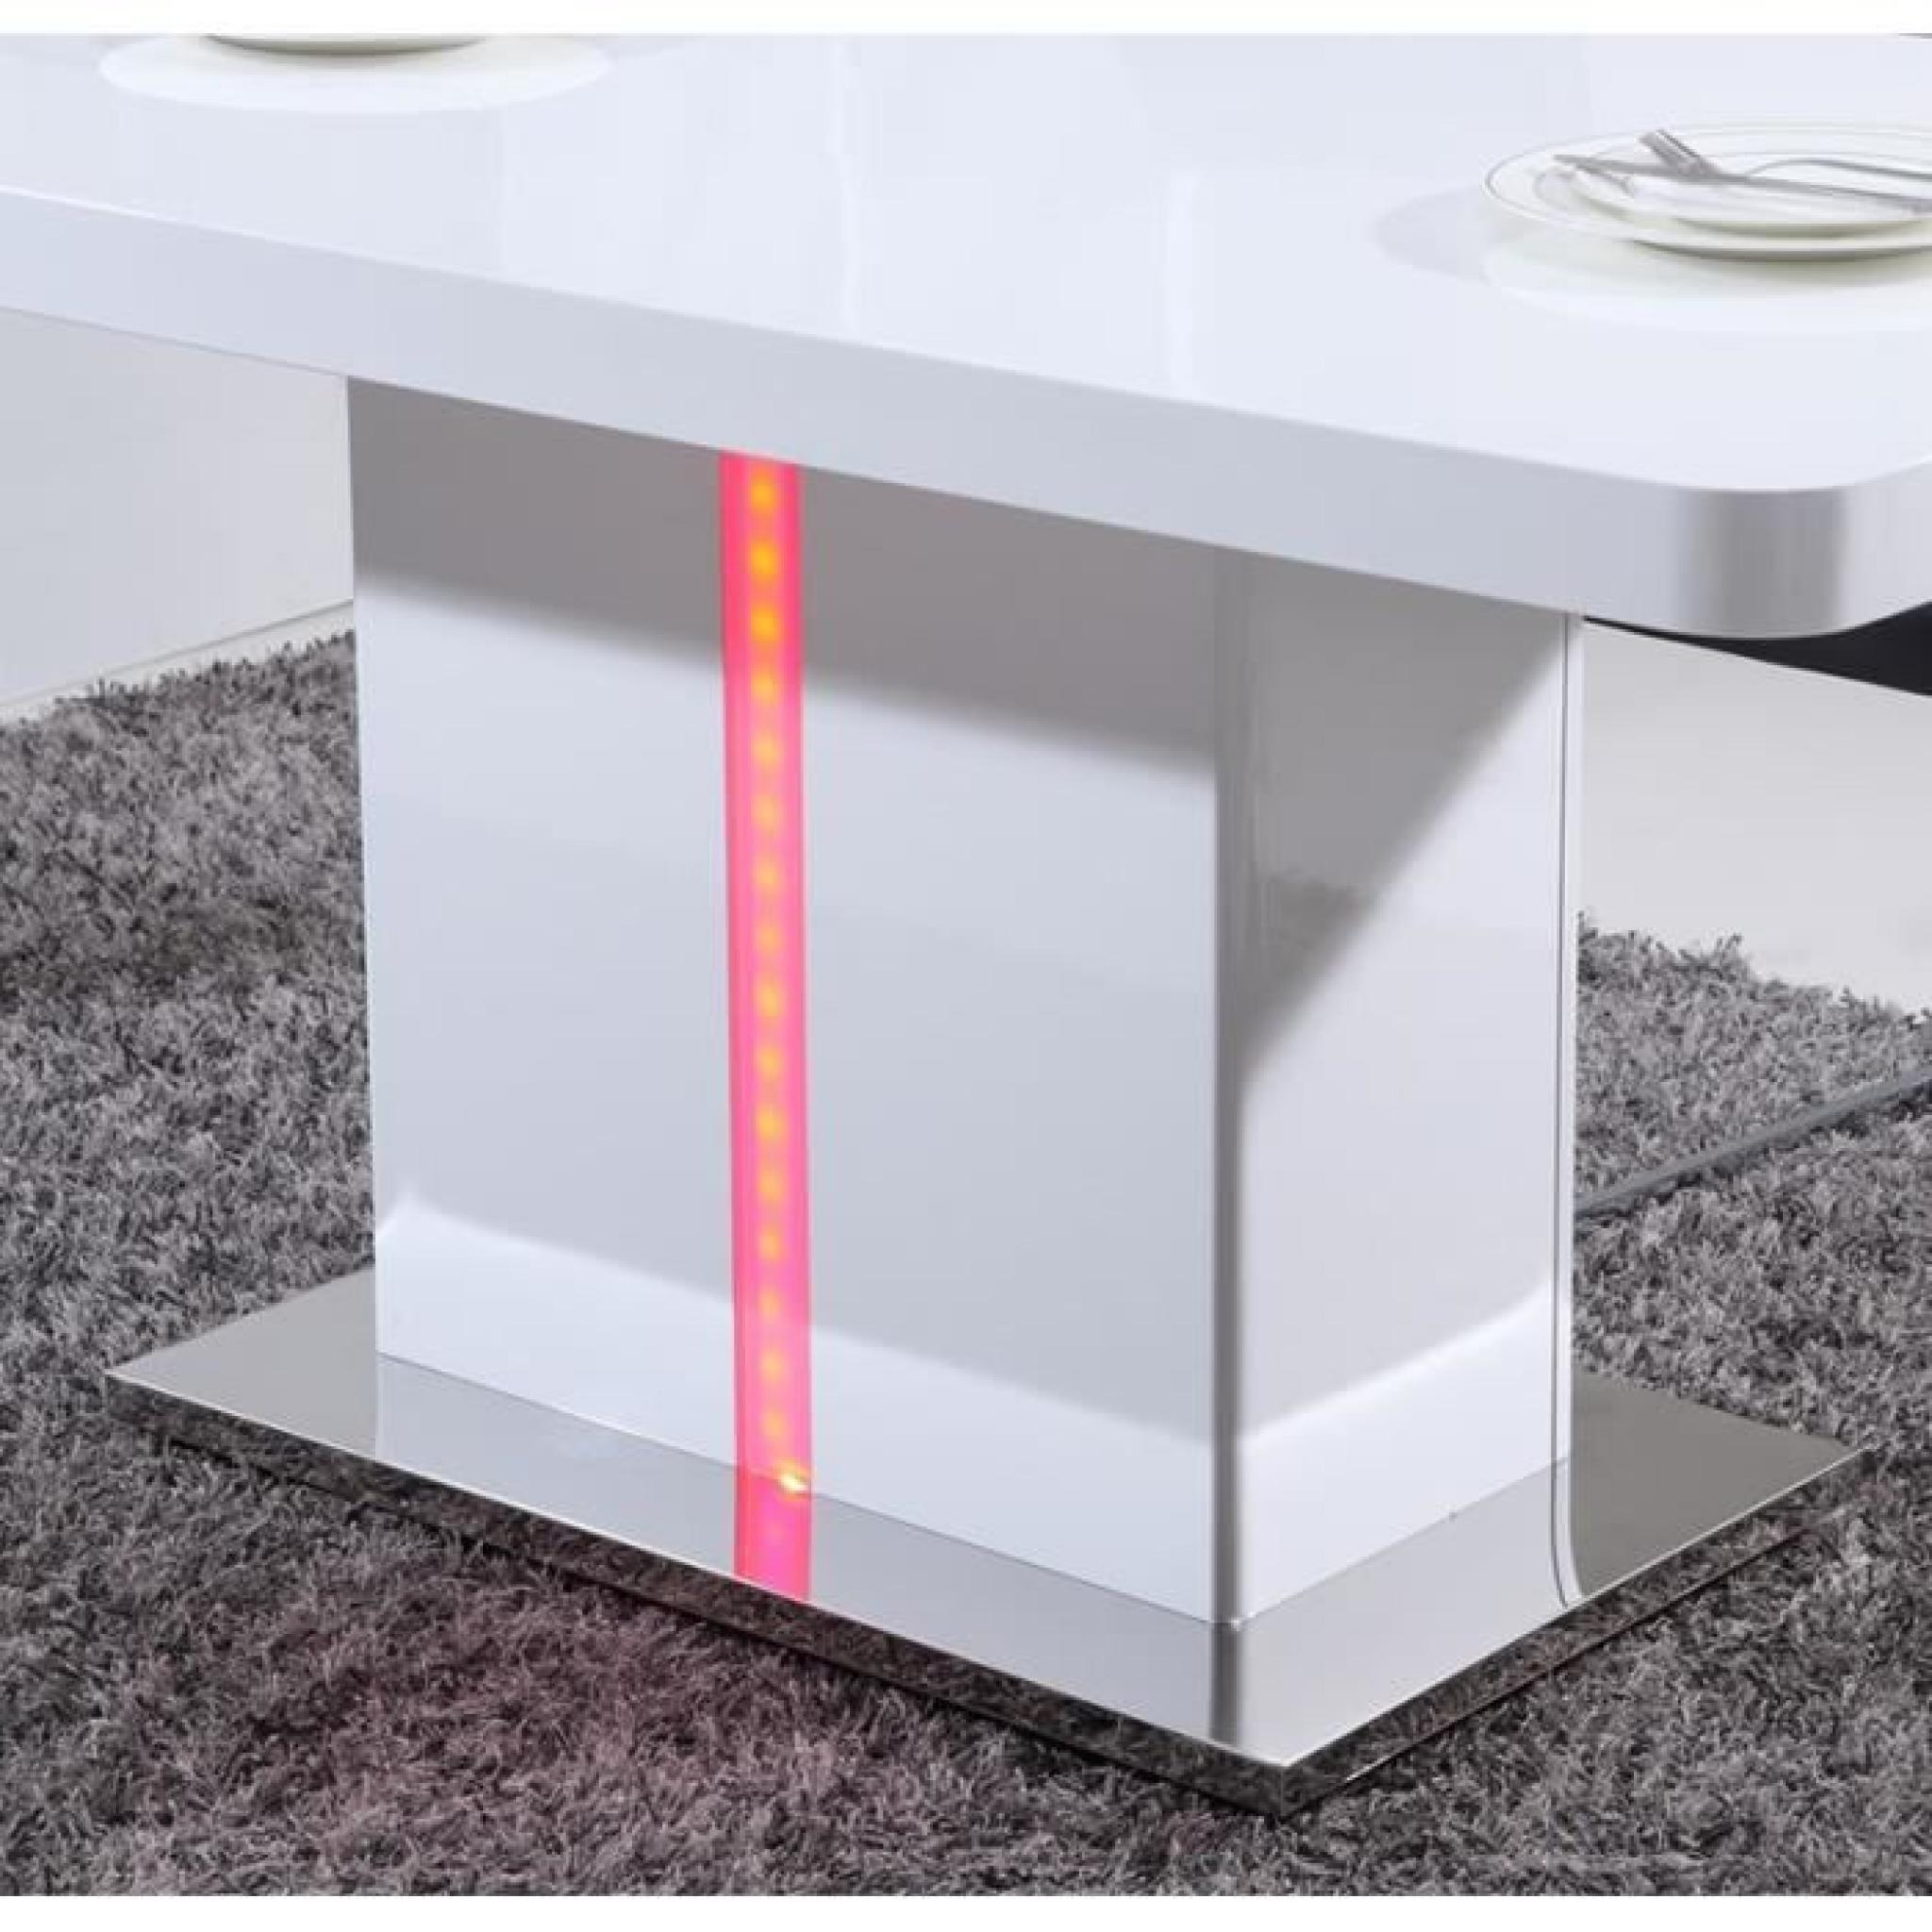 LASER Table à manger 160cm laqué blanc brillant avec LED multicolore